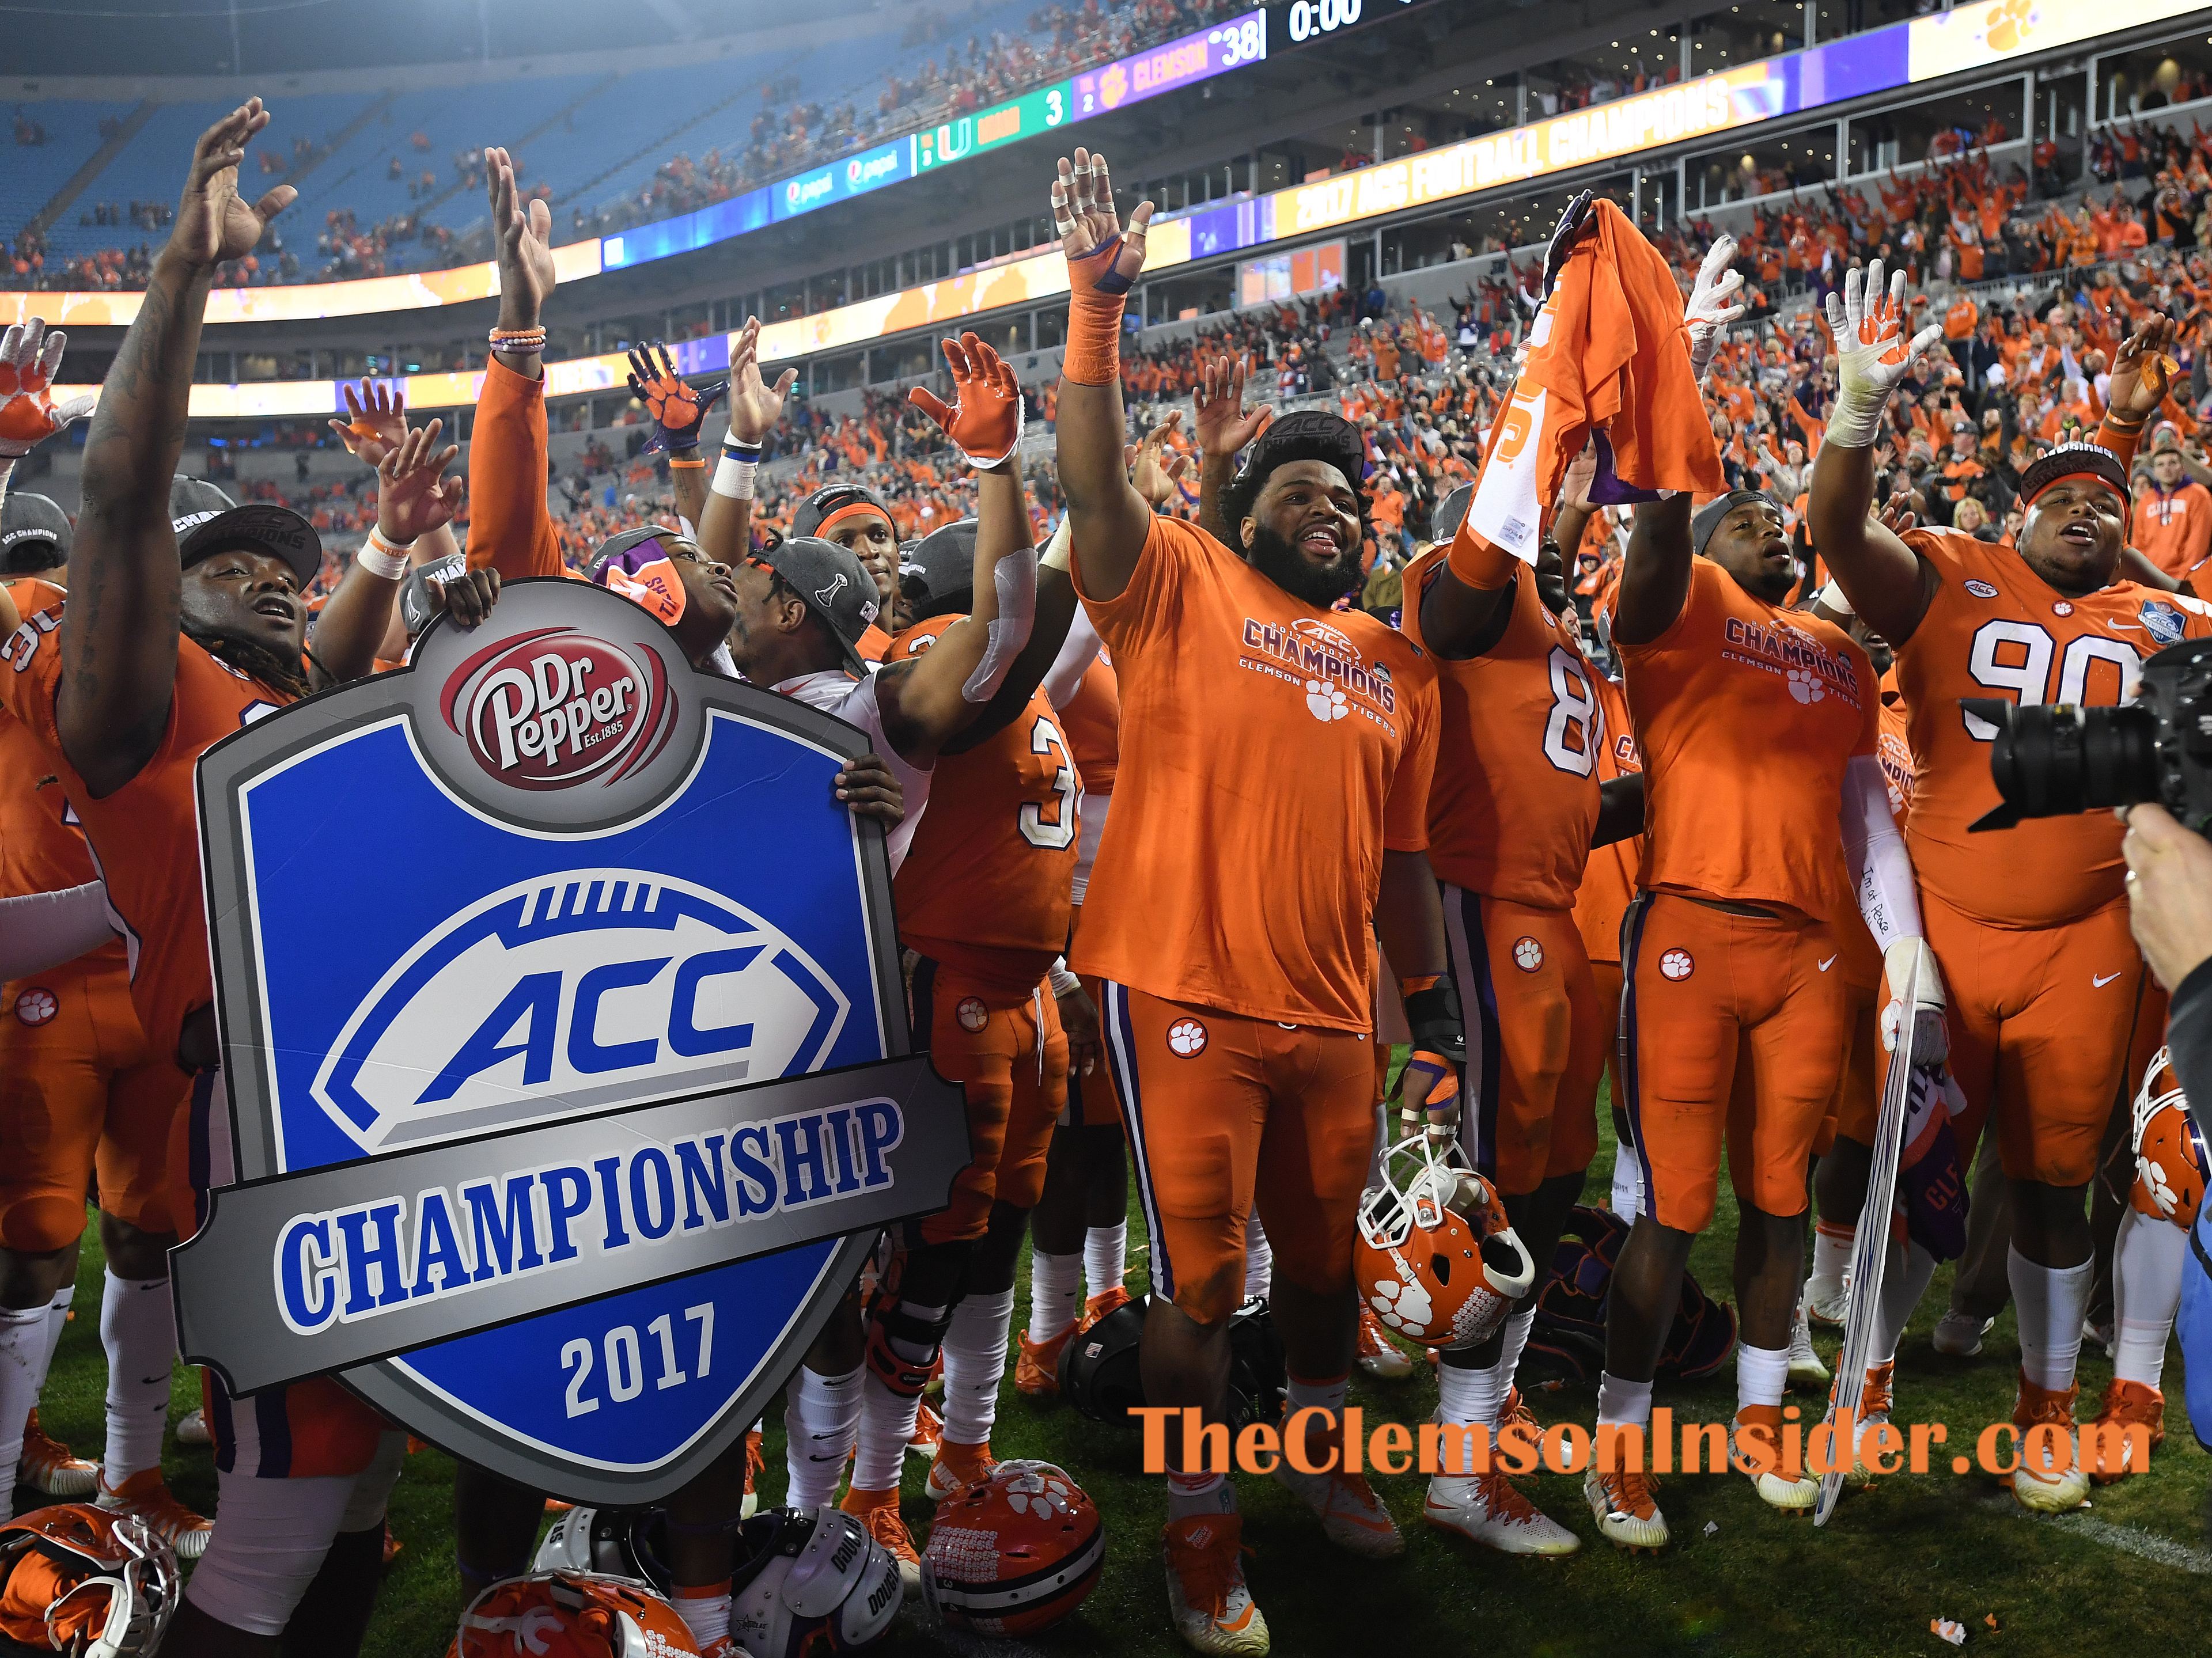 Clemson celebrates after the Tigers 38-3 win over Miami in the ACC championship game at Bank of America Stadium in Charlotte on Saturday, December 2, 2017.